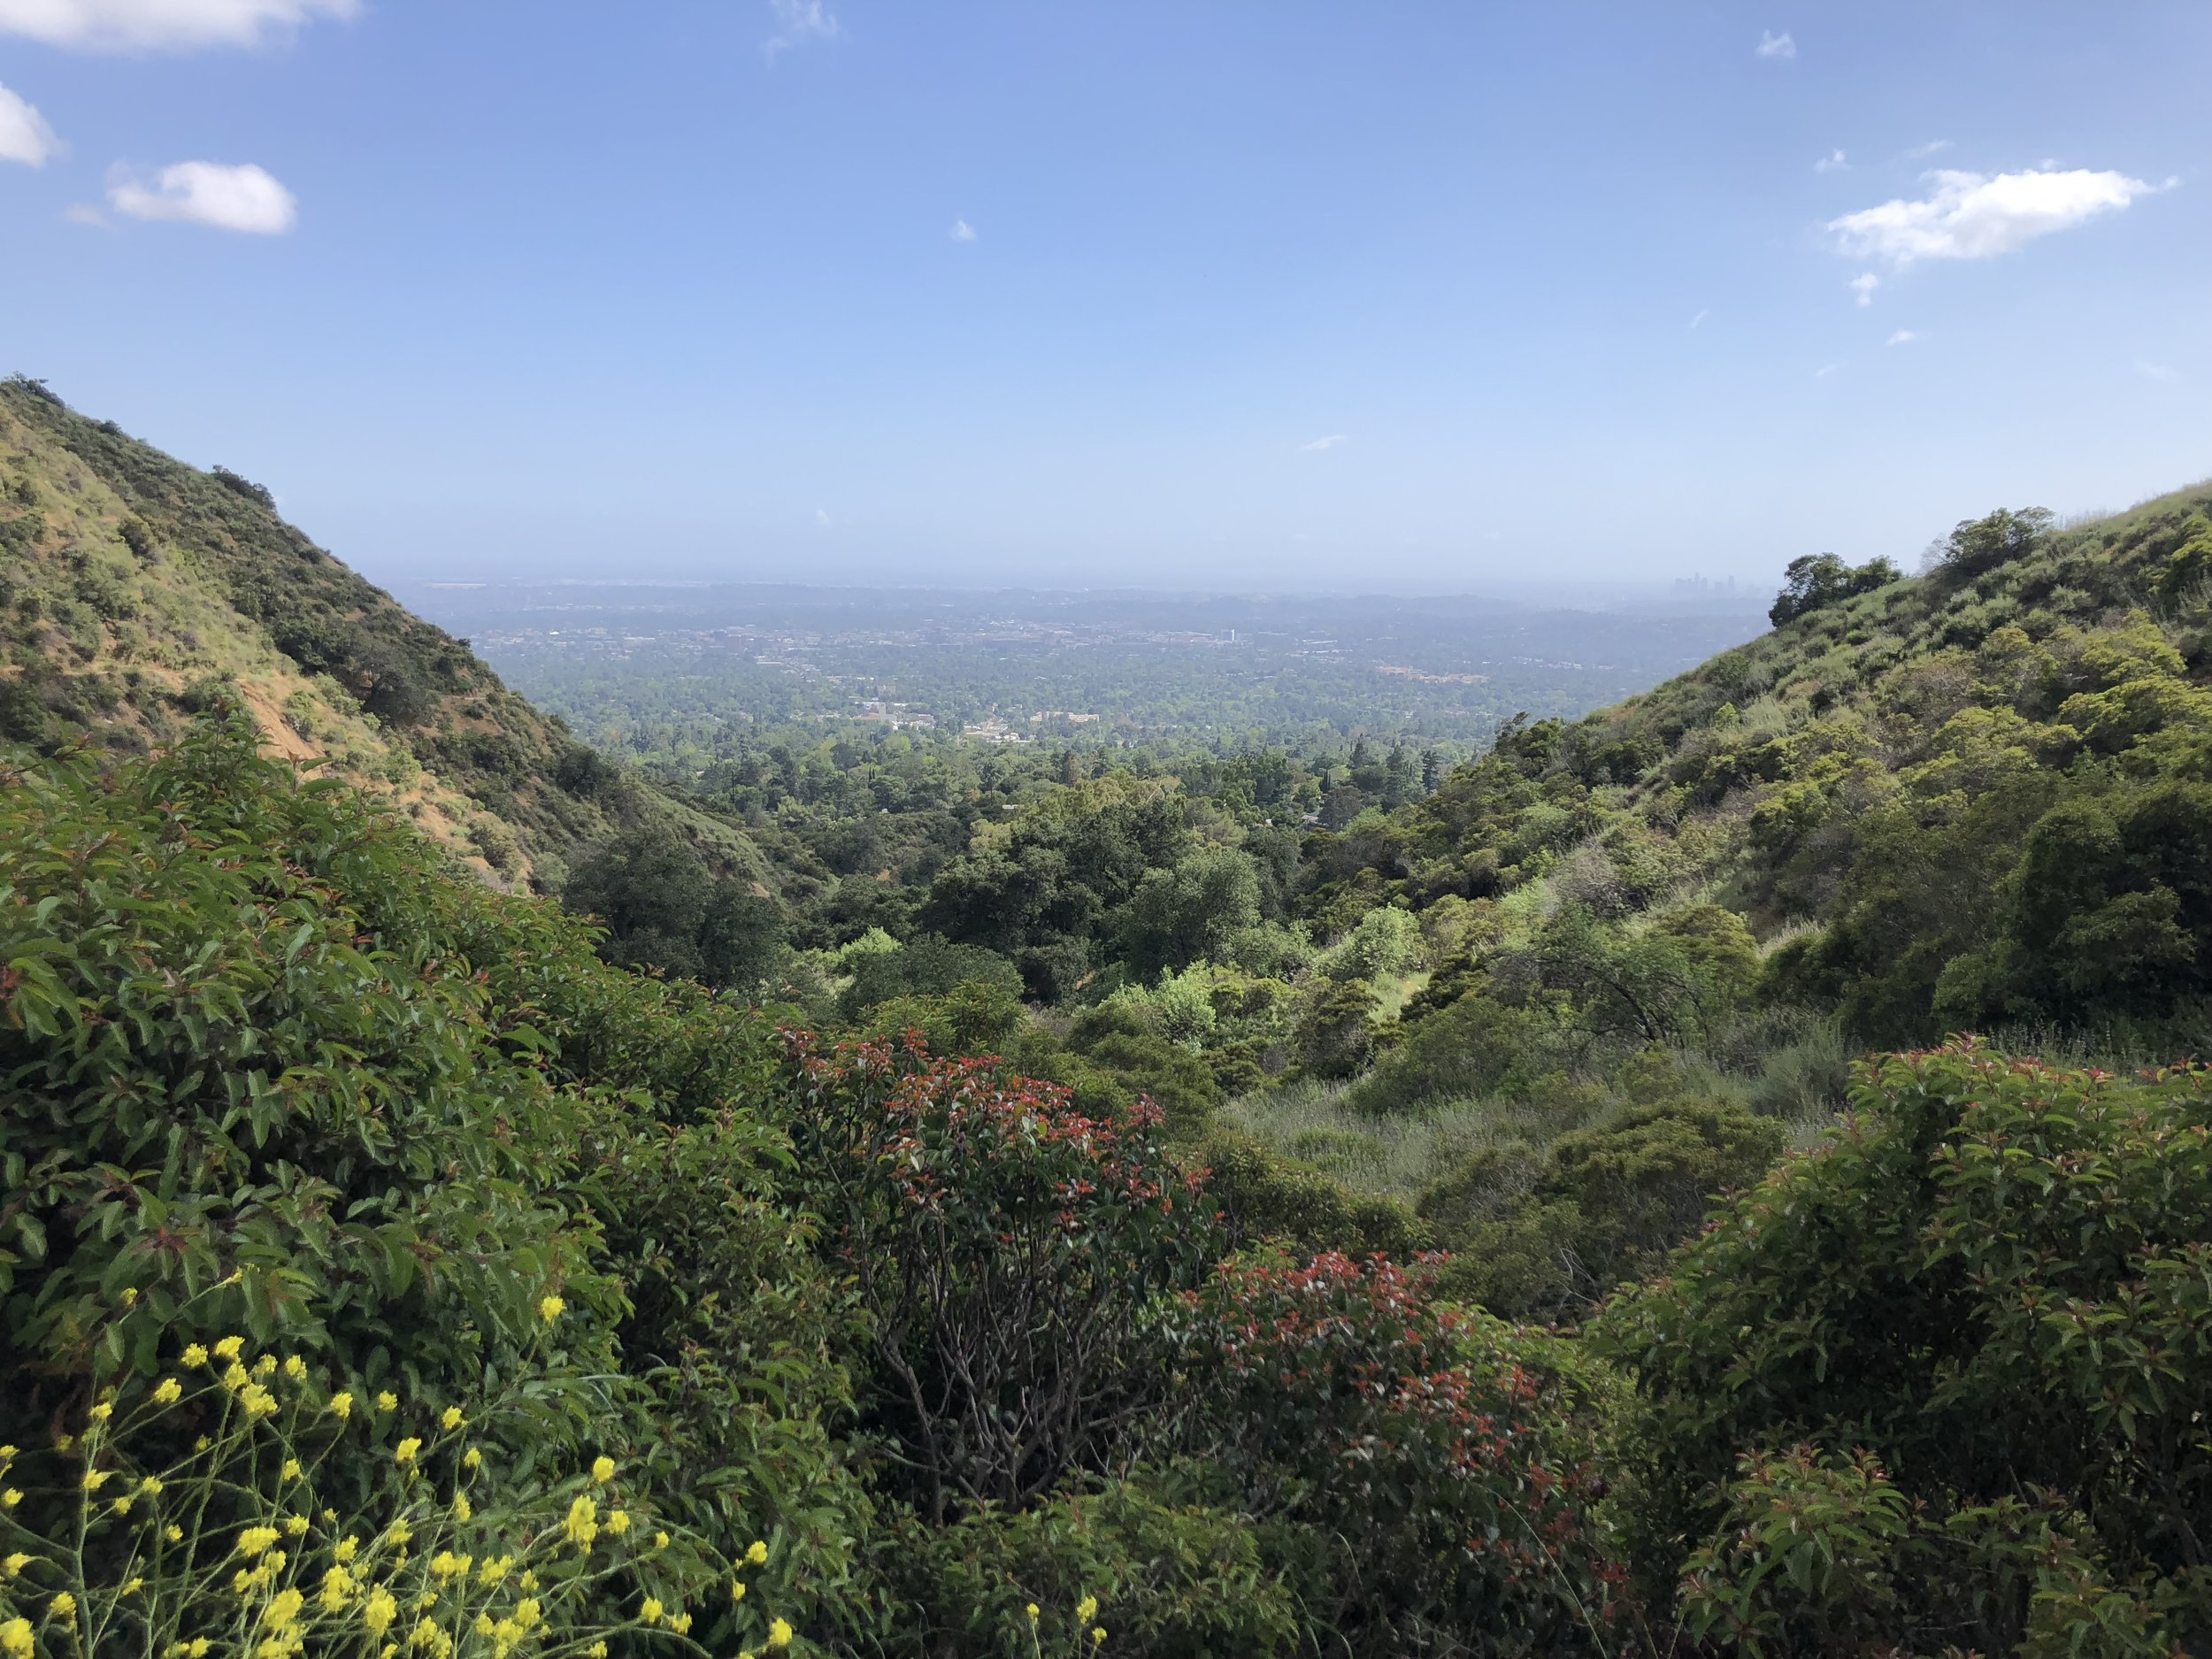 hiking in monrovia the other day after some rain!